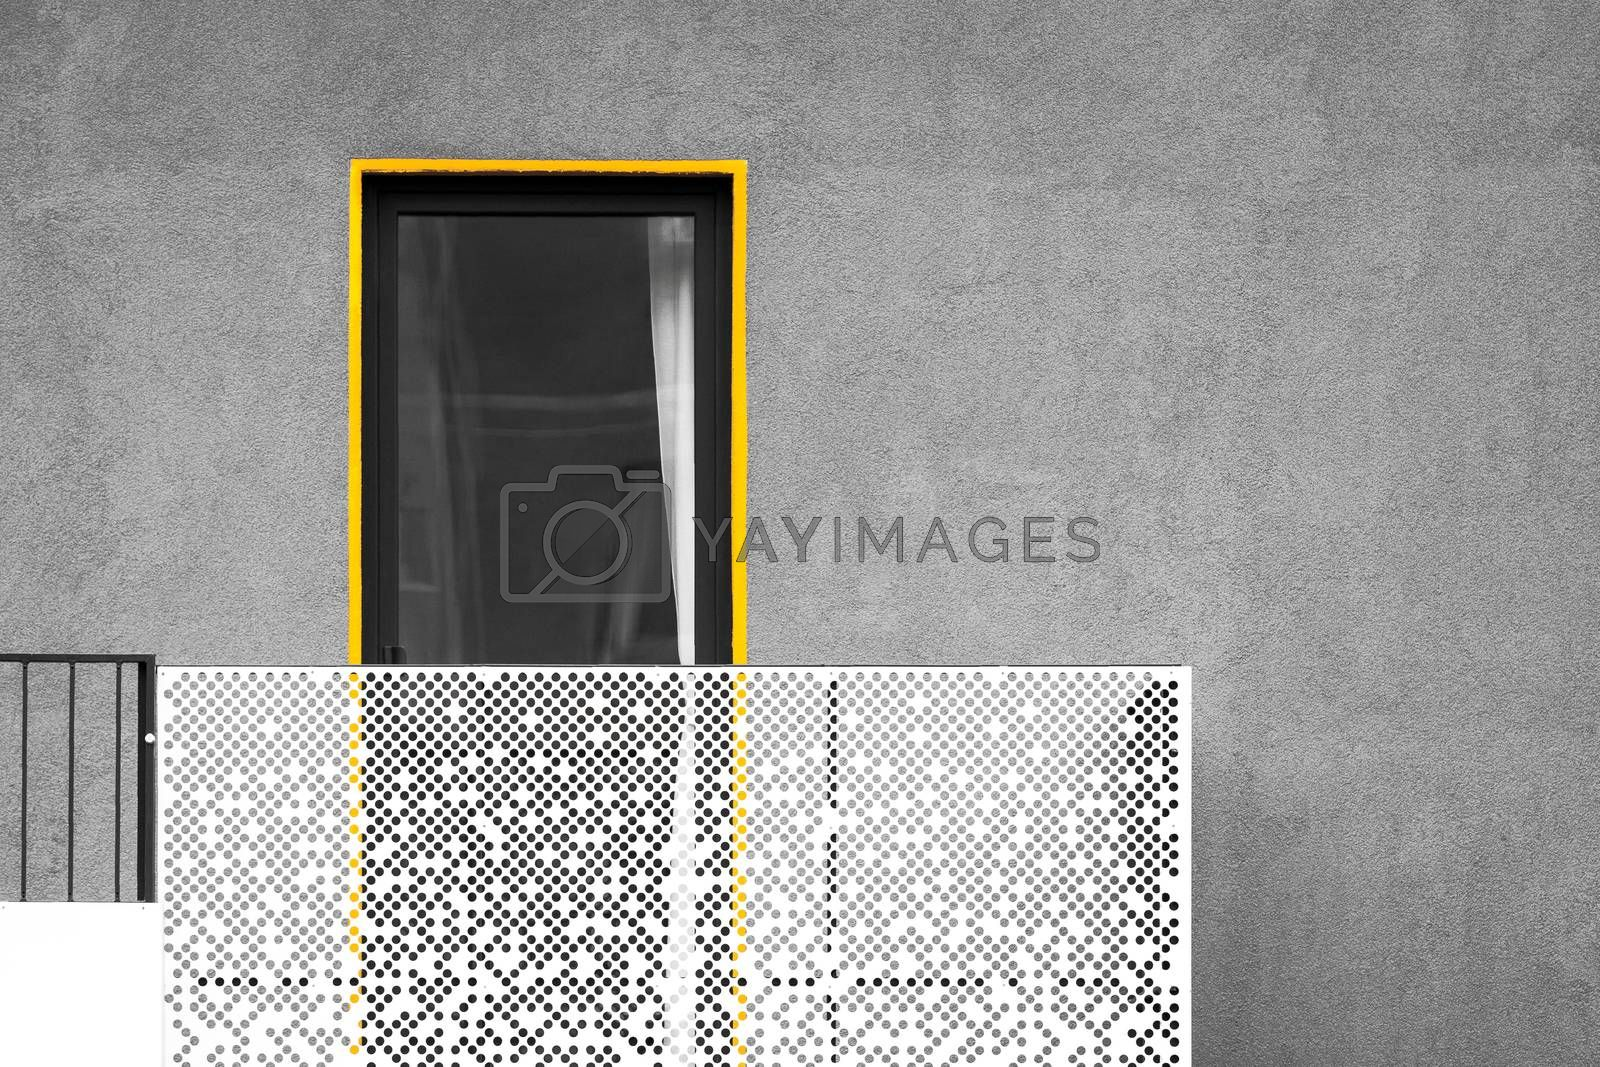 Abstract modern architecture with balcony and window. Black and white picture with yellow detail standing out